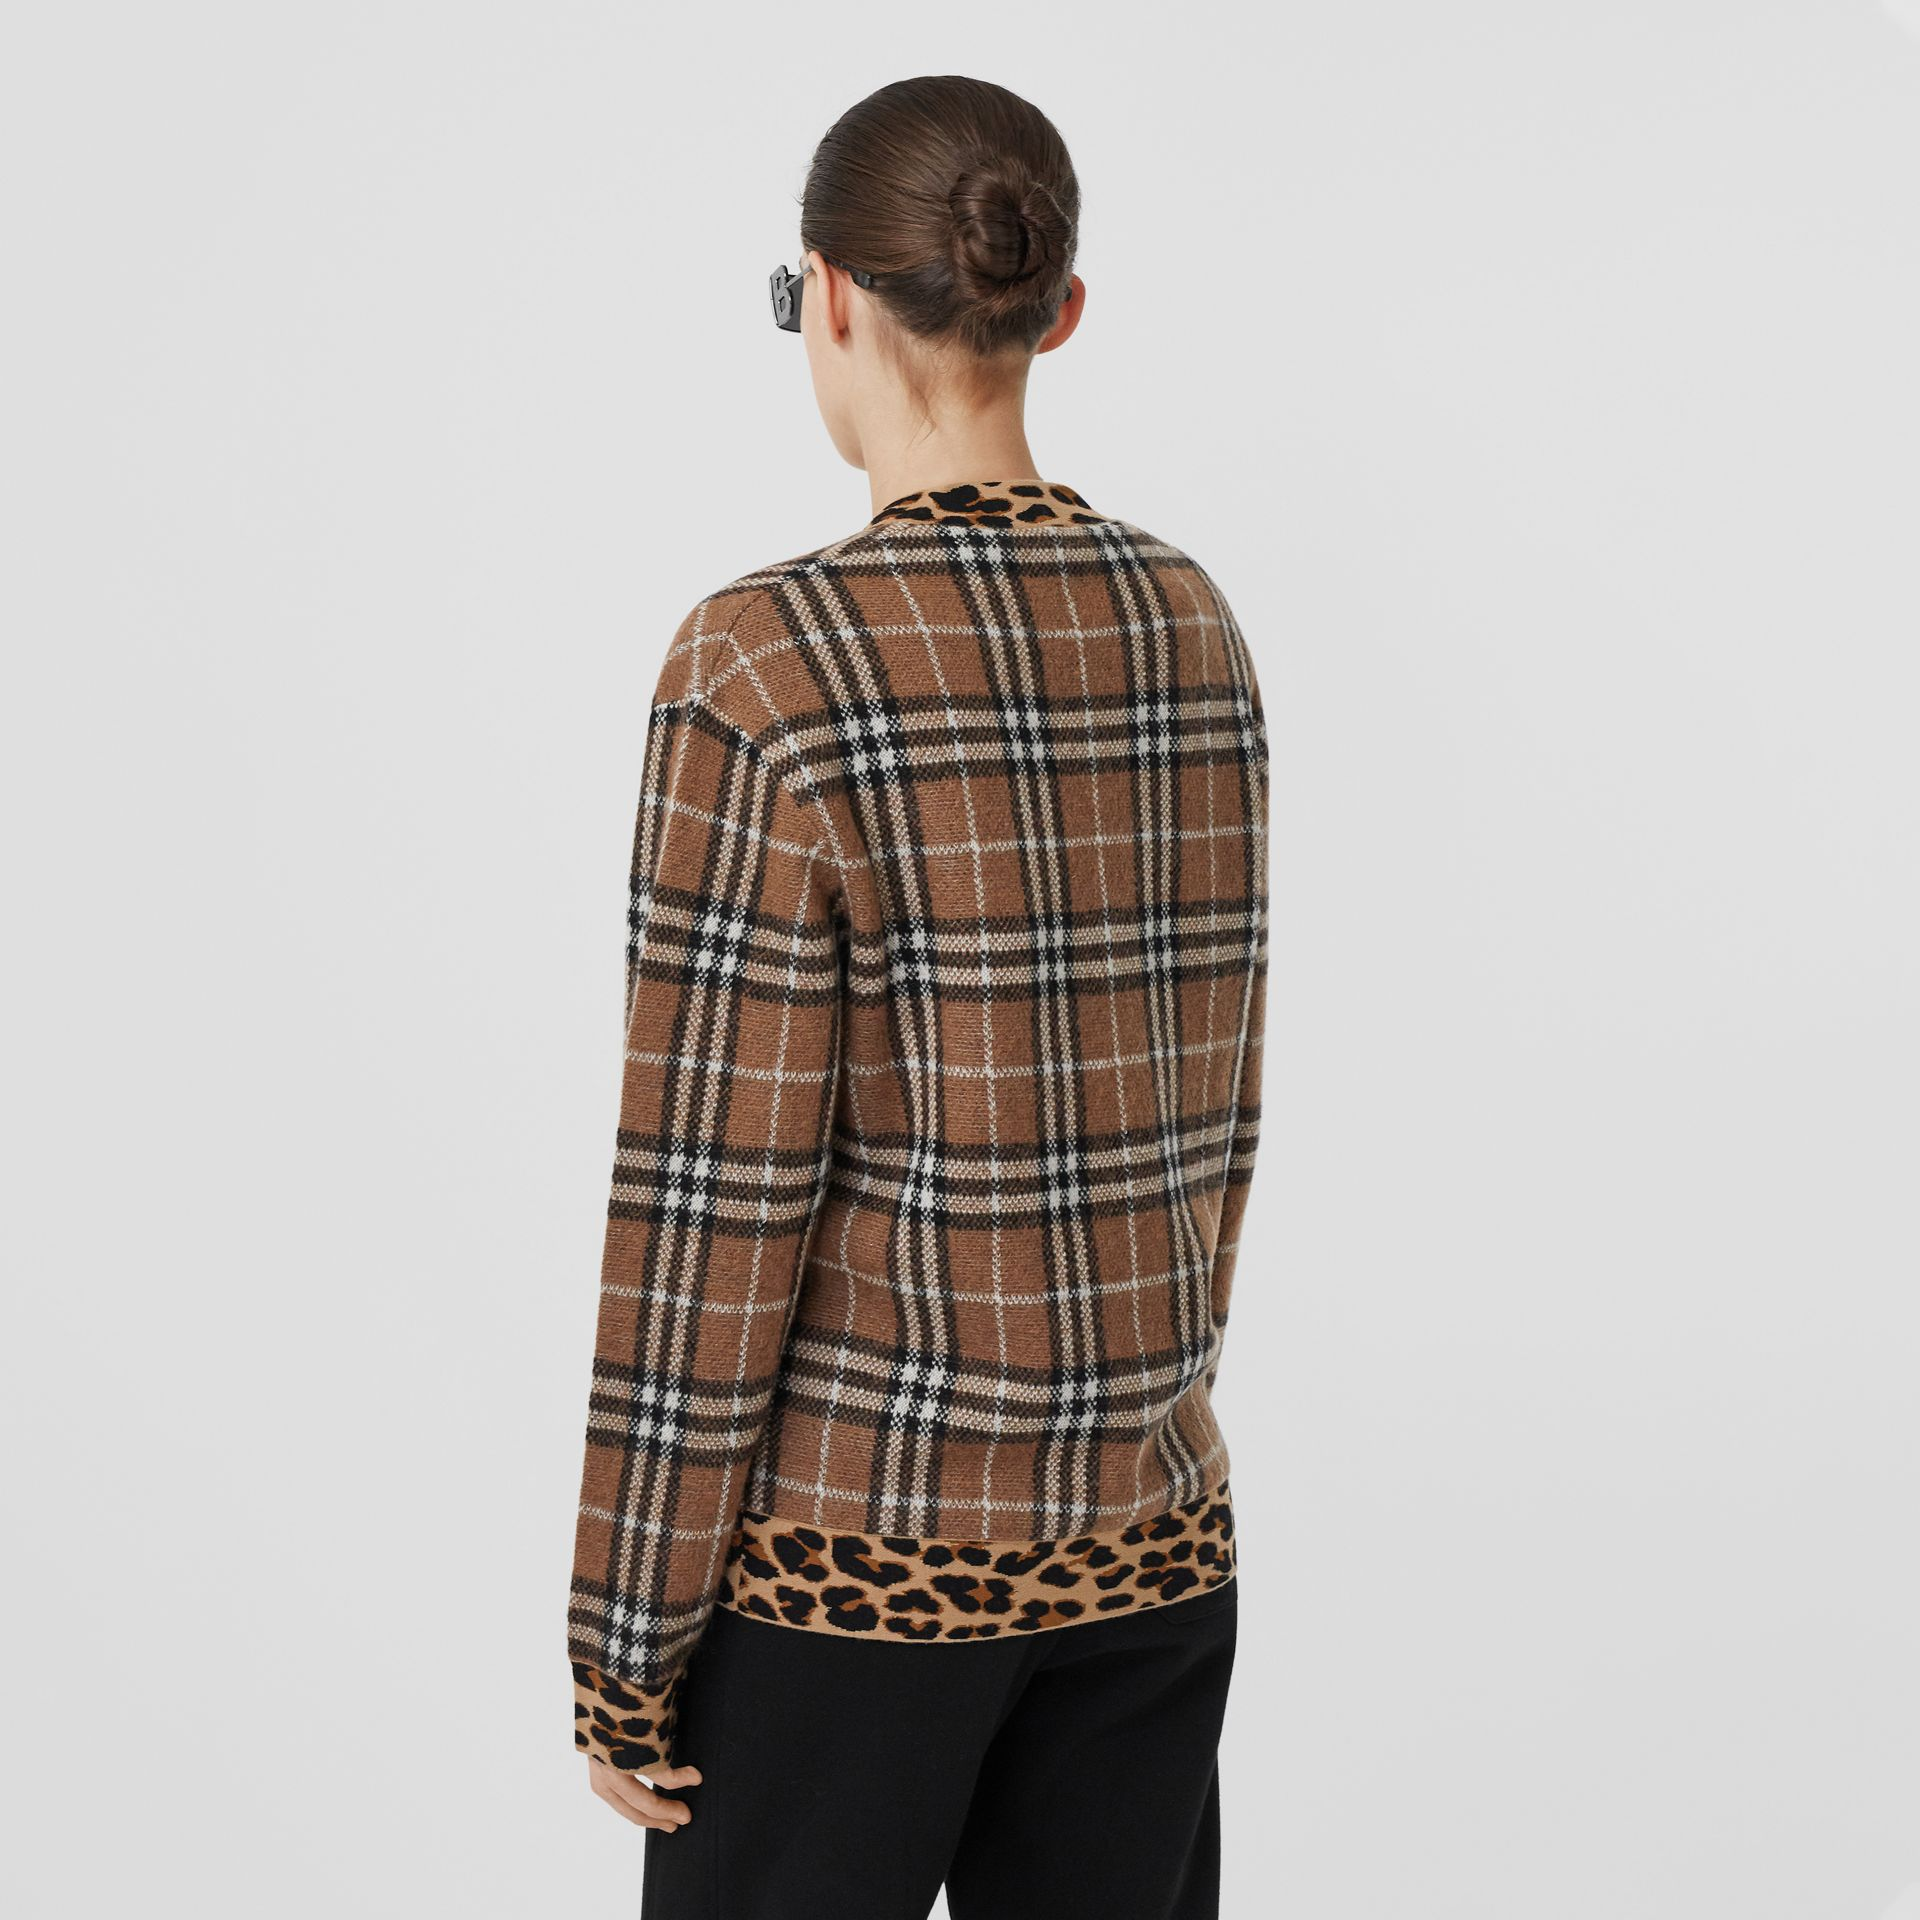 Leopard Detail Vintage Check Cashmere Blend Sweater in Archive Beige - Women | Burberry - gallery image 2